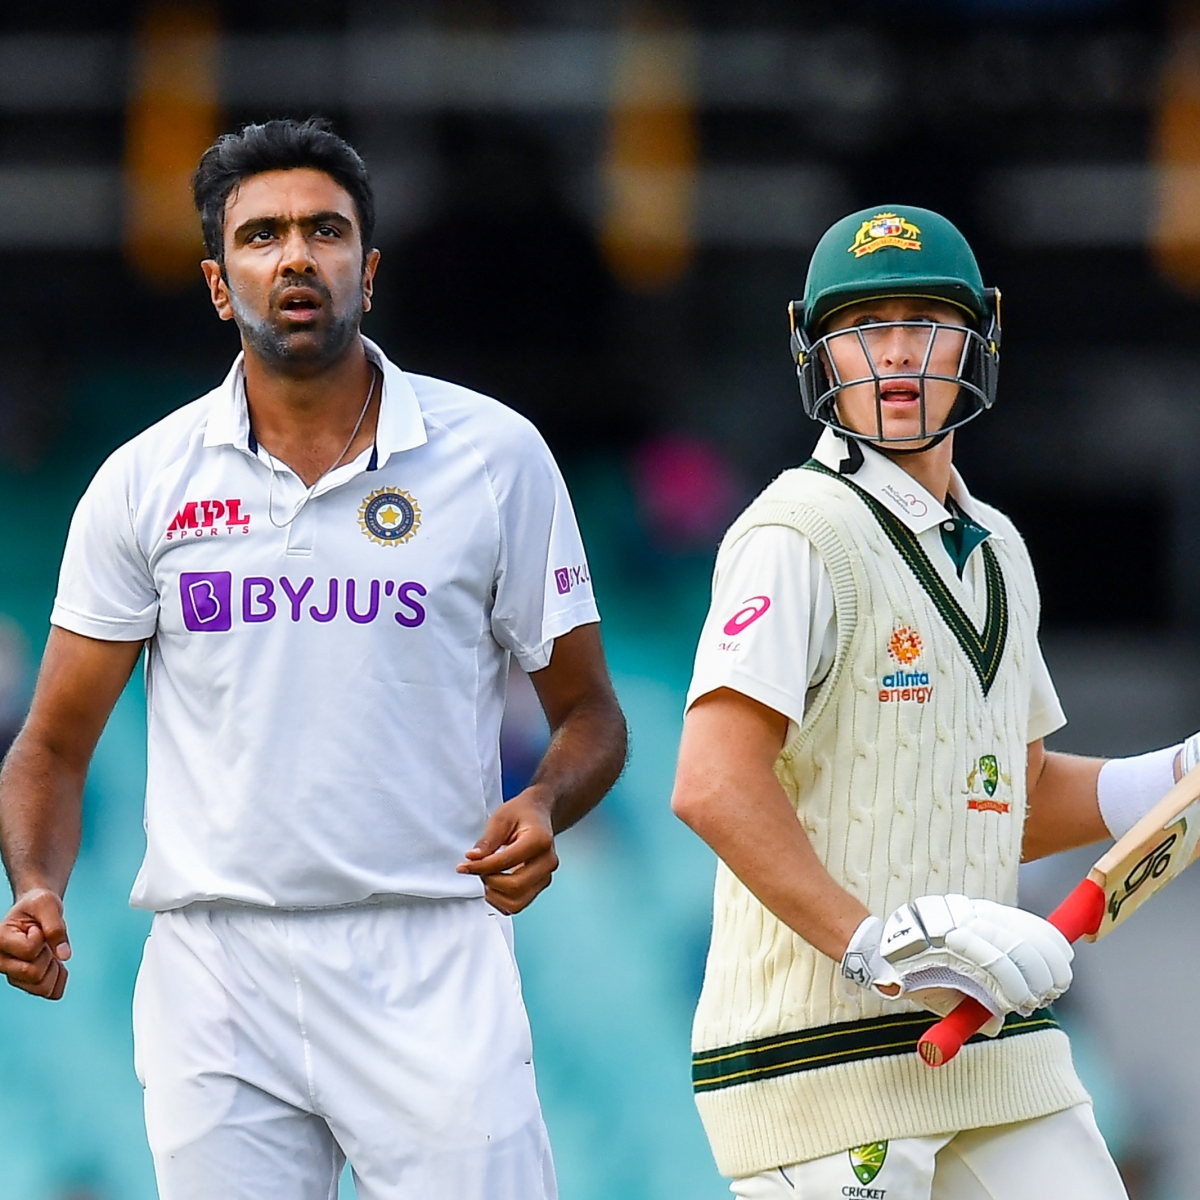 Ind vs Aus, 4th Test: Preview, Dream11, and all you need to know about the upcoming Gabba Test